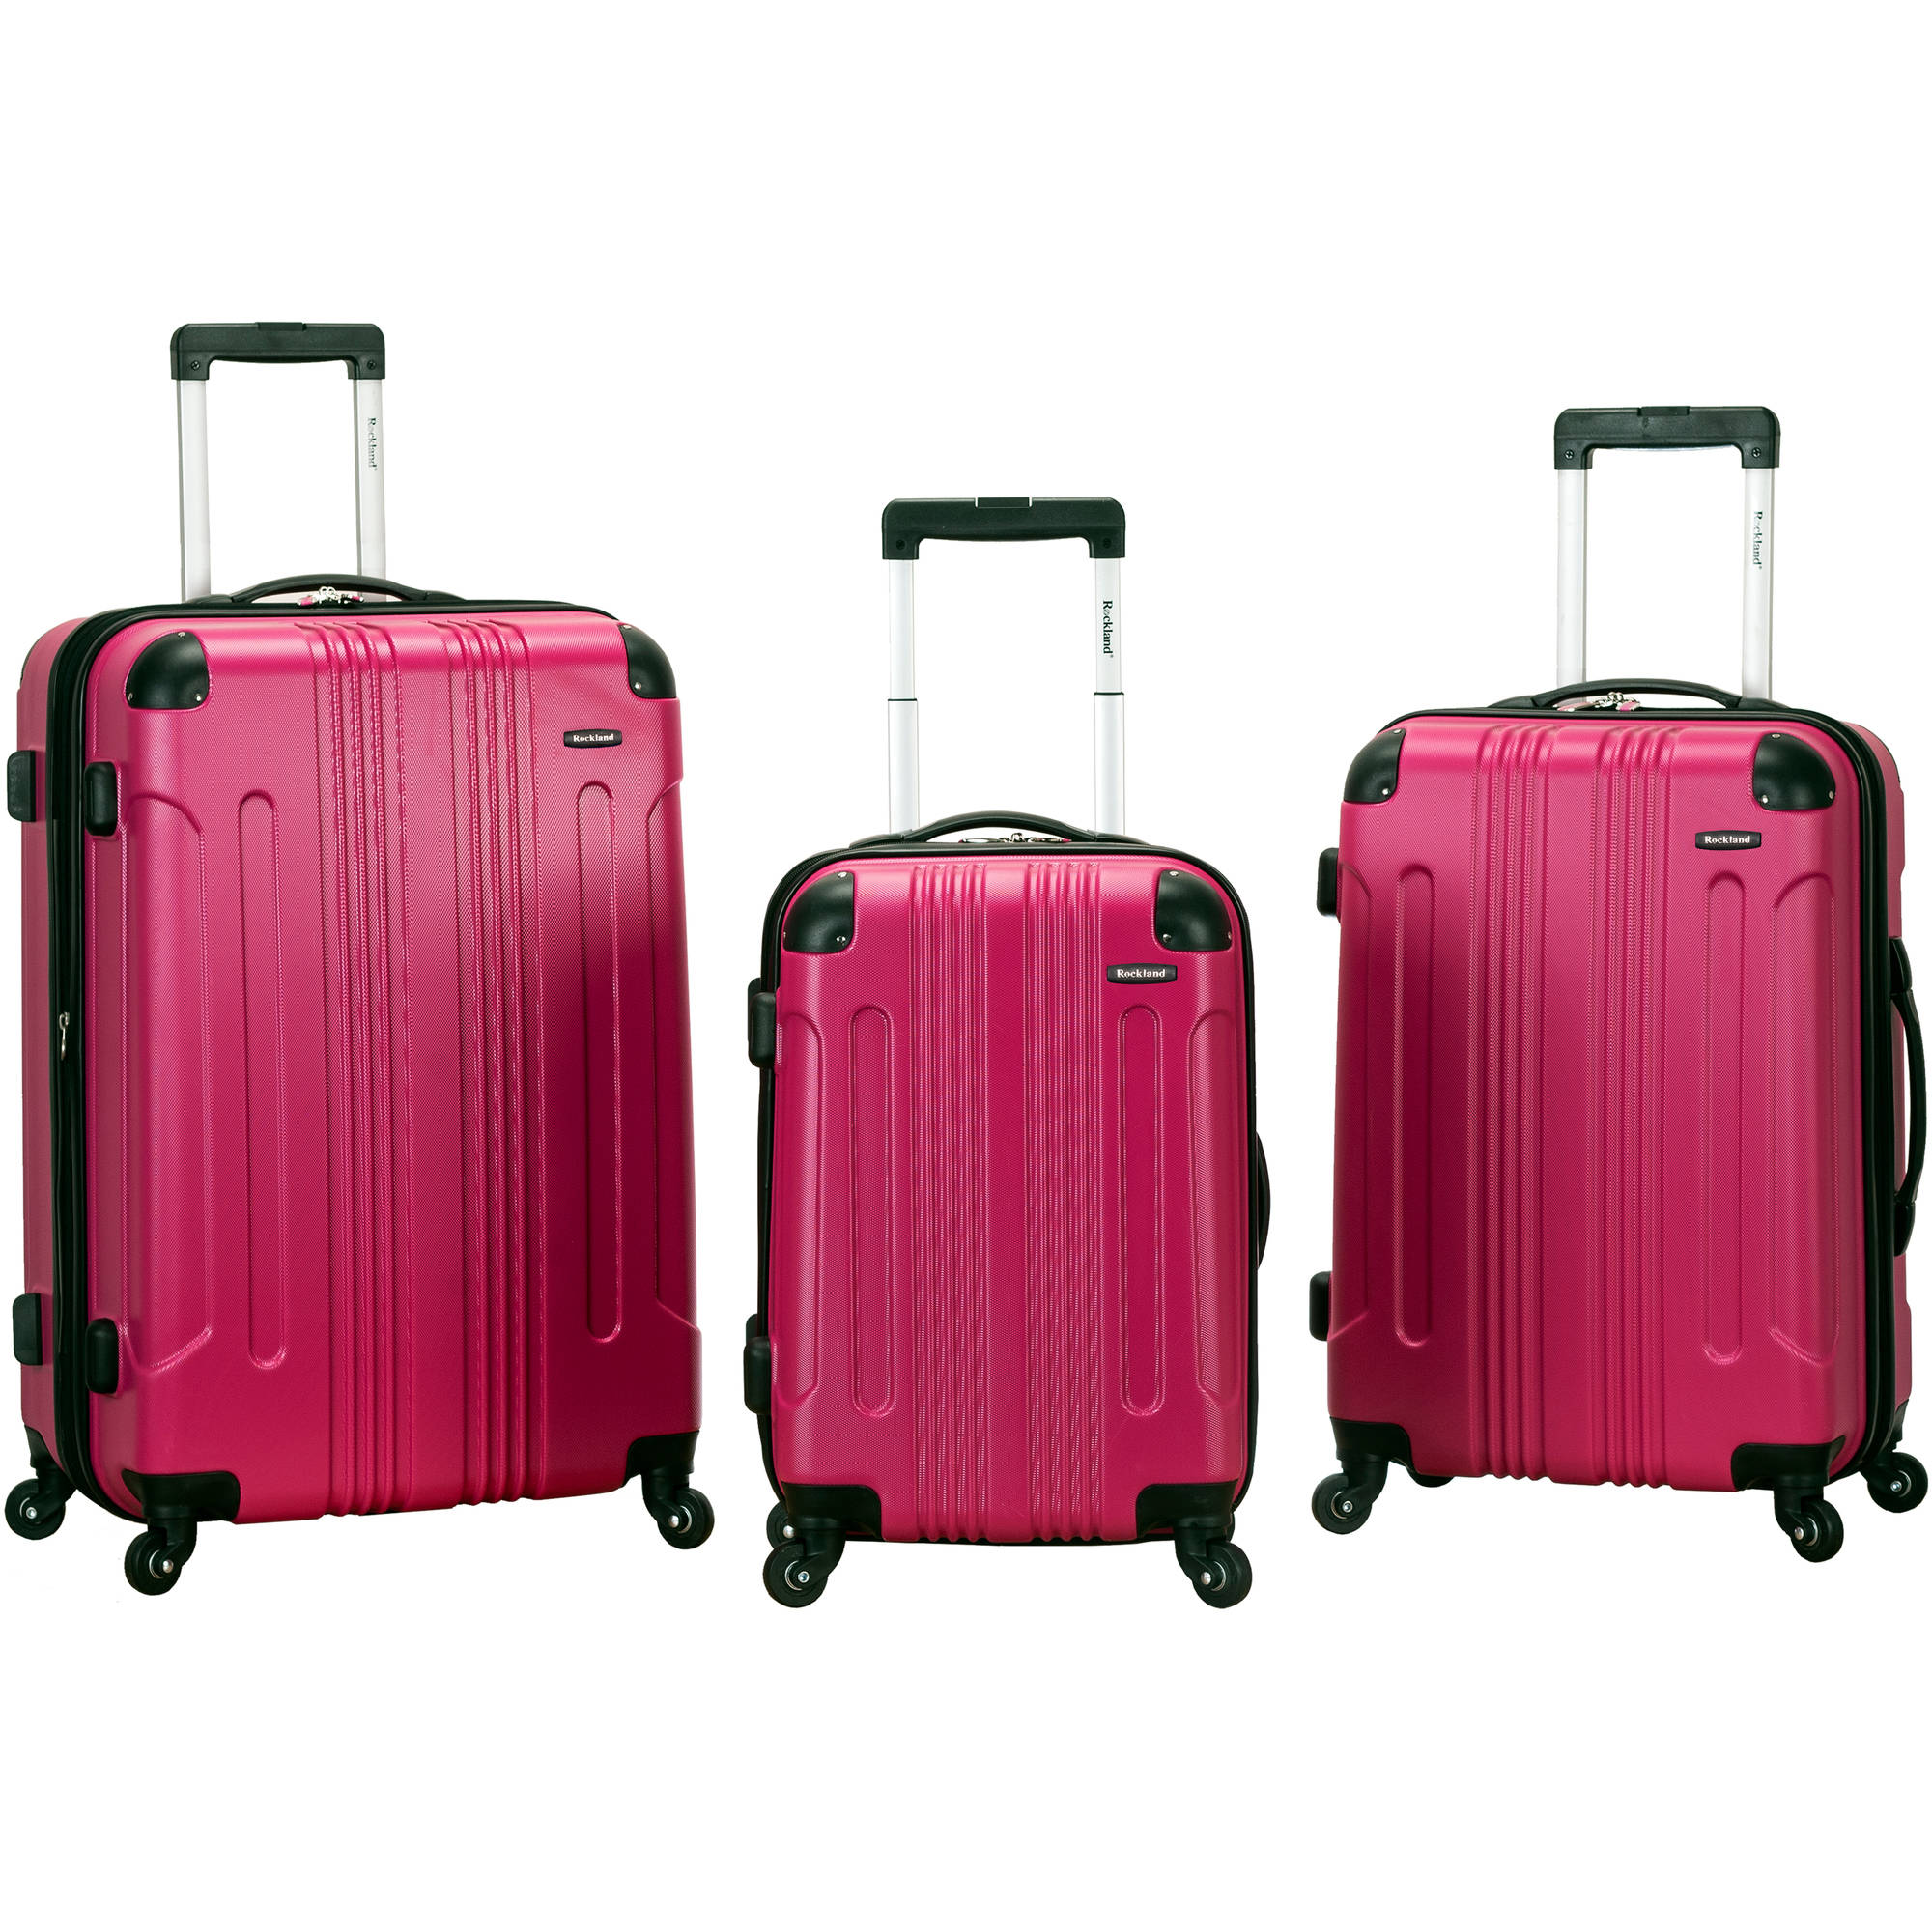 Rockland Luggage 3-Piece ABS Hard-Sided Spinning Luggage Set